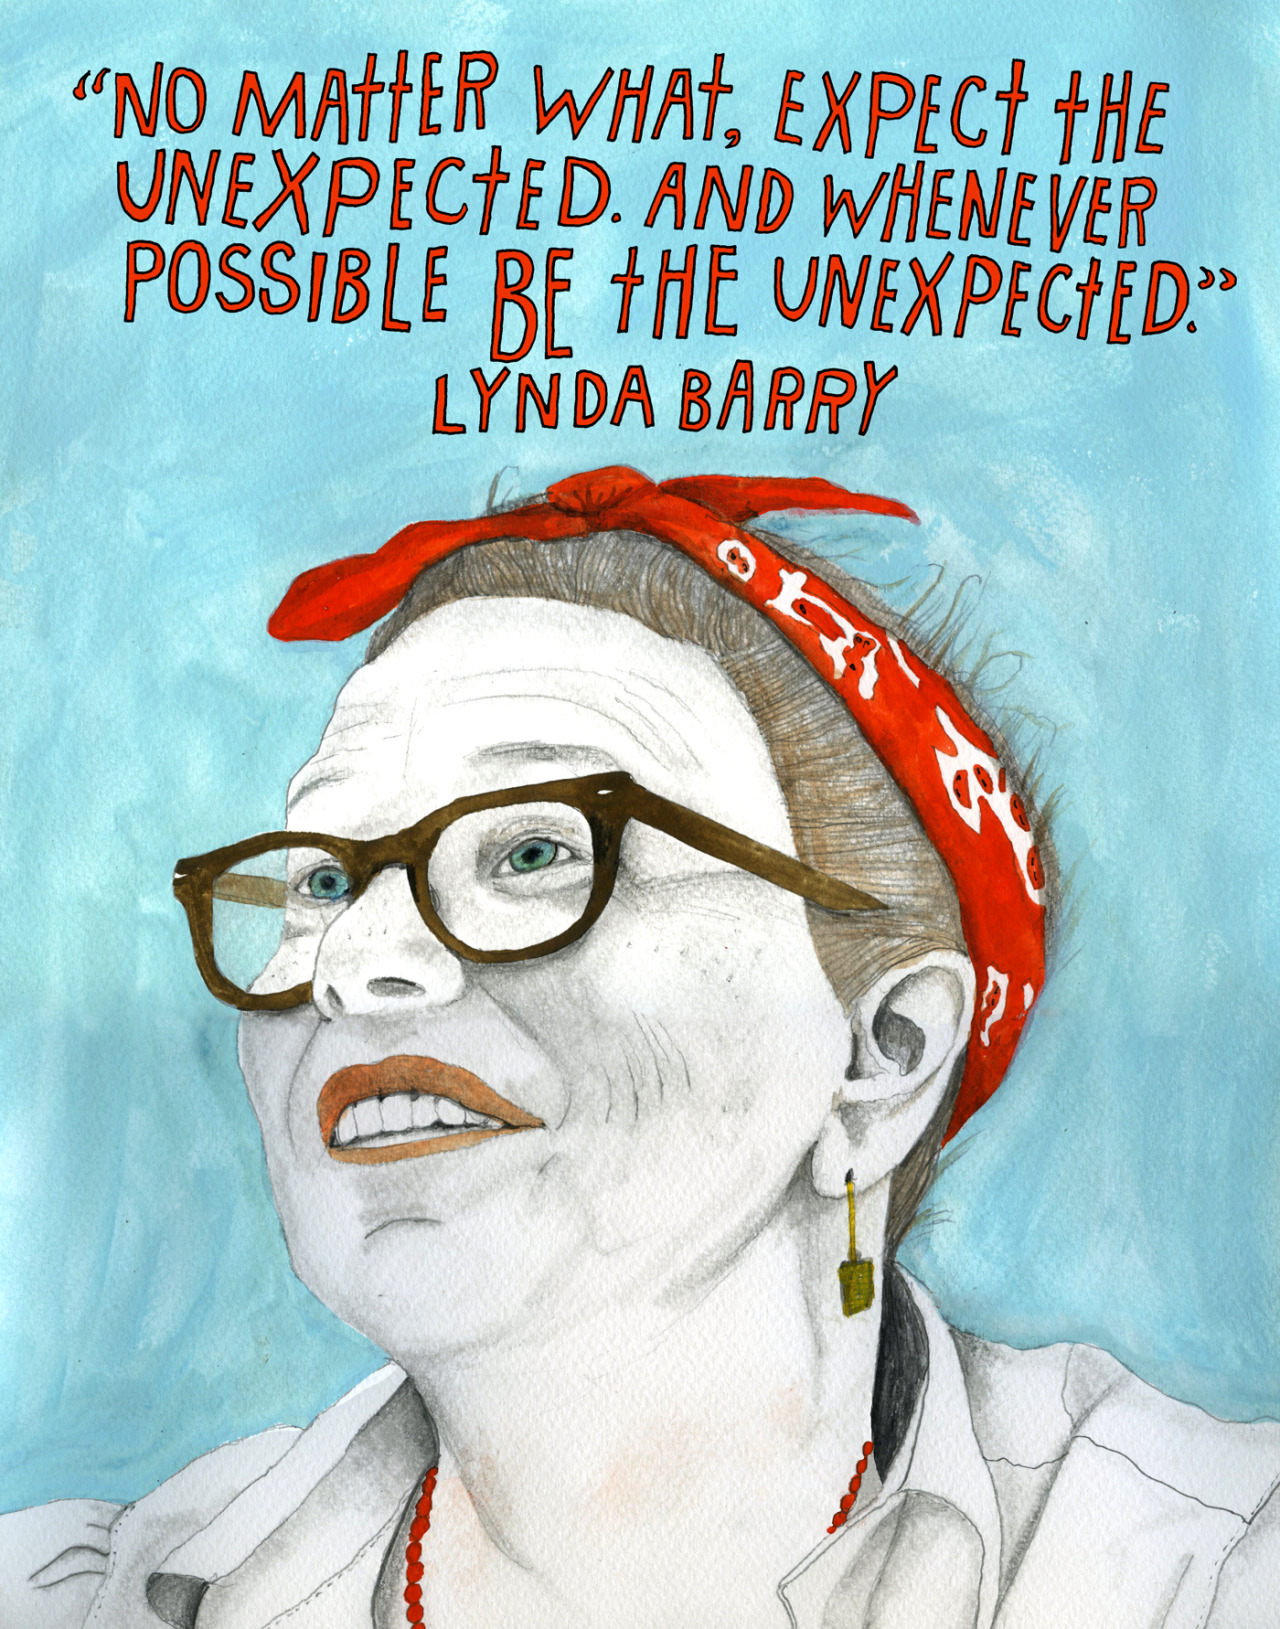 American cartoonist and author Lynda Barry (born January 2, 1956) is as much a storyteller as she is a visual philosopher. From her 1999 graphic-novel-turned-off-Broadway-hit The Good Times Are Killing Me, exploring the interracial relationship between two girls, to her long-running, deeply empathic weekly comic strip Ernie Pook's Comeek, Barry's instantly recognizable works are invariably imbued with equal parts humor, irreverence, sensitivity, and wisdom. In 2009, her graphic novel What Is, published the previous year, received an Eisner Award for Best Reality-Based Work. But perhaps the most remarkable quality of Barry's work is precisely its defiance of reality — the whimsy and wit with which she blurs the line between the real and, to borrow Sartre's term, the irreal to peel away at some simple truth or grand complexity of what it means to be human. Learn more: Wikipedia  |  Books  |  Literary Jukebox